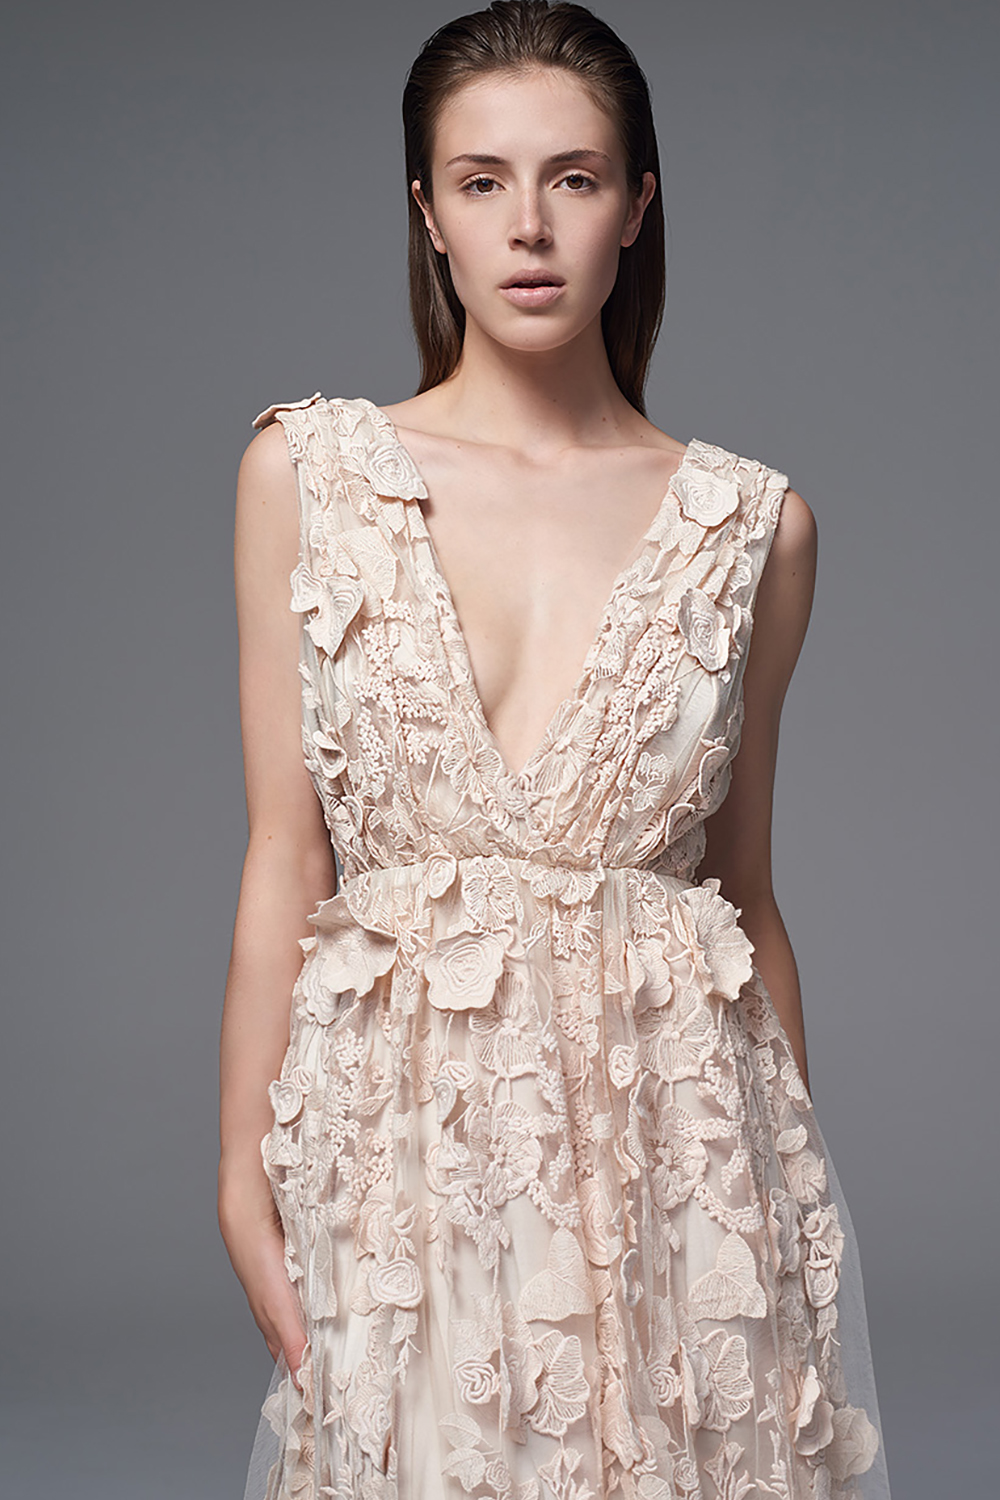 THE CLEMENCE FLORAL DRESS WITH PLUNGING V FRONT AND BACK COVERED IN 3D APPLIQUE FLOWERS. BRIDAL WEDDING DRESS BY HALFPENNY LONDON